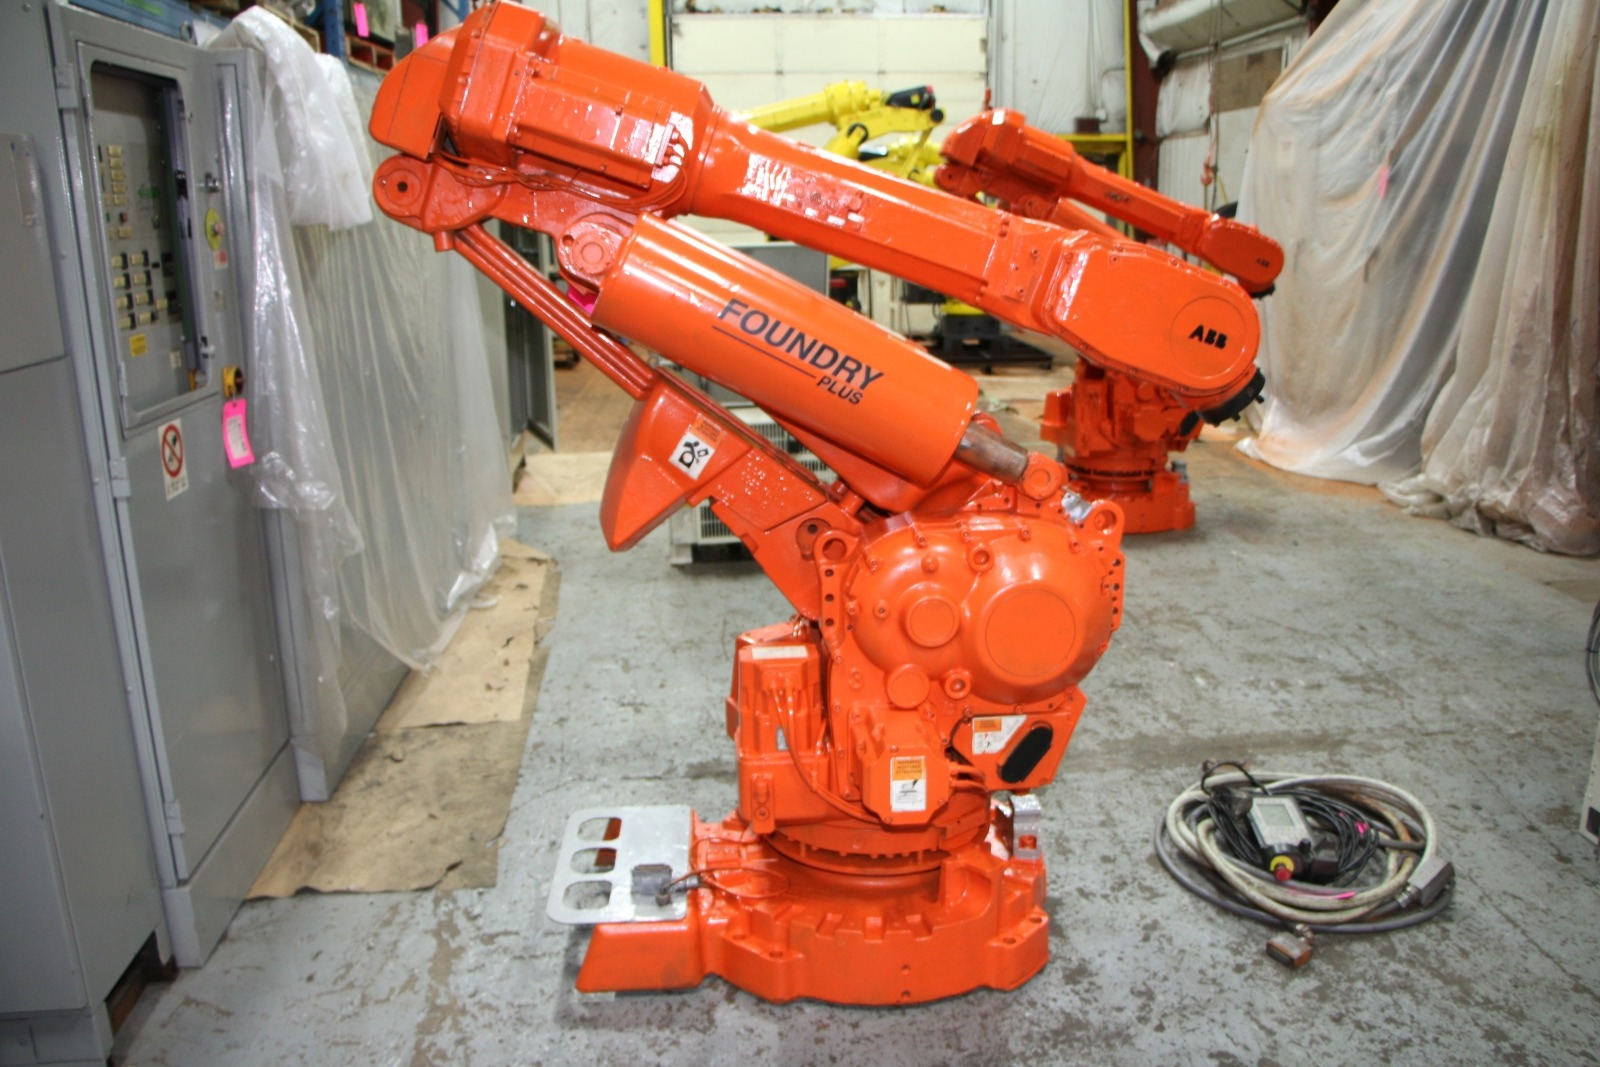 Used ABB 6400 Foundry Plus Robot #4578